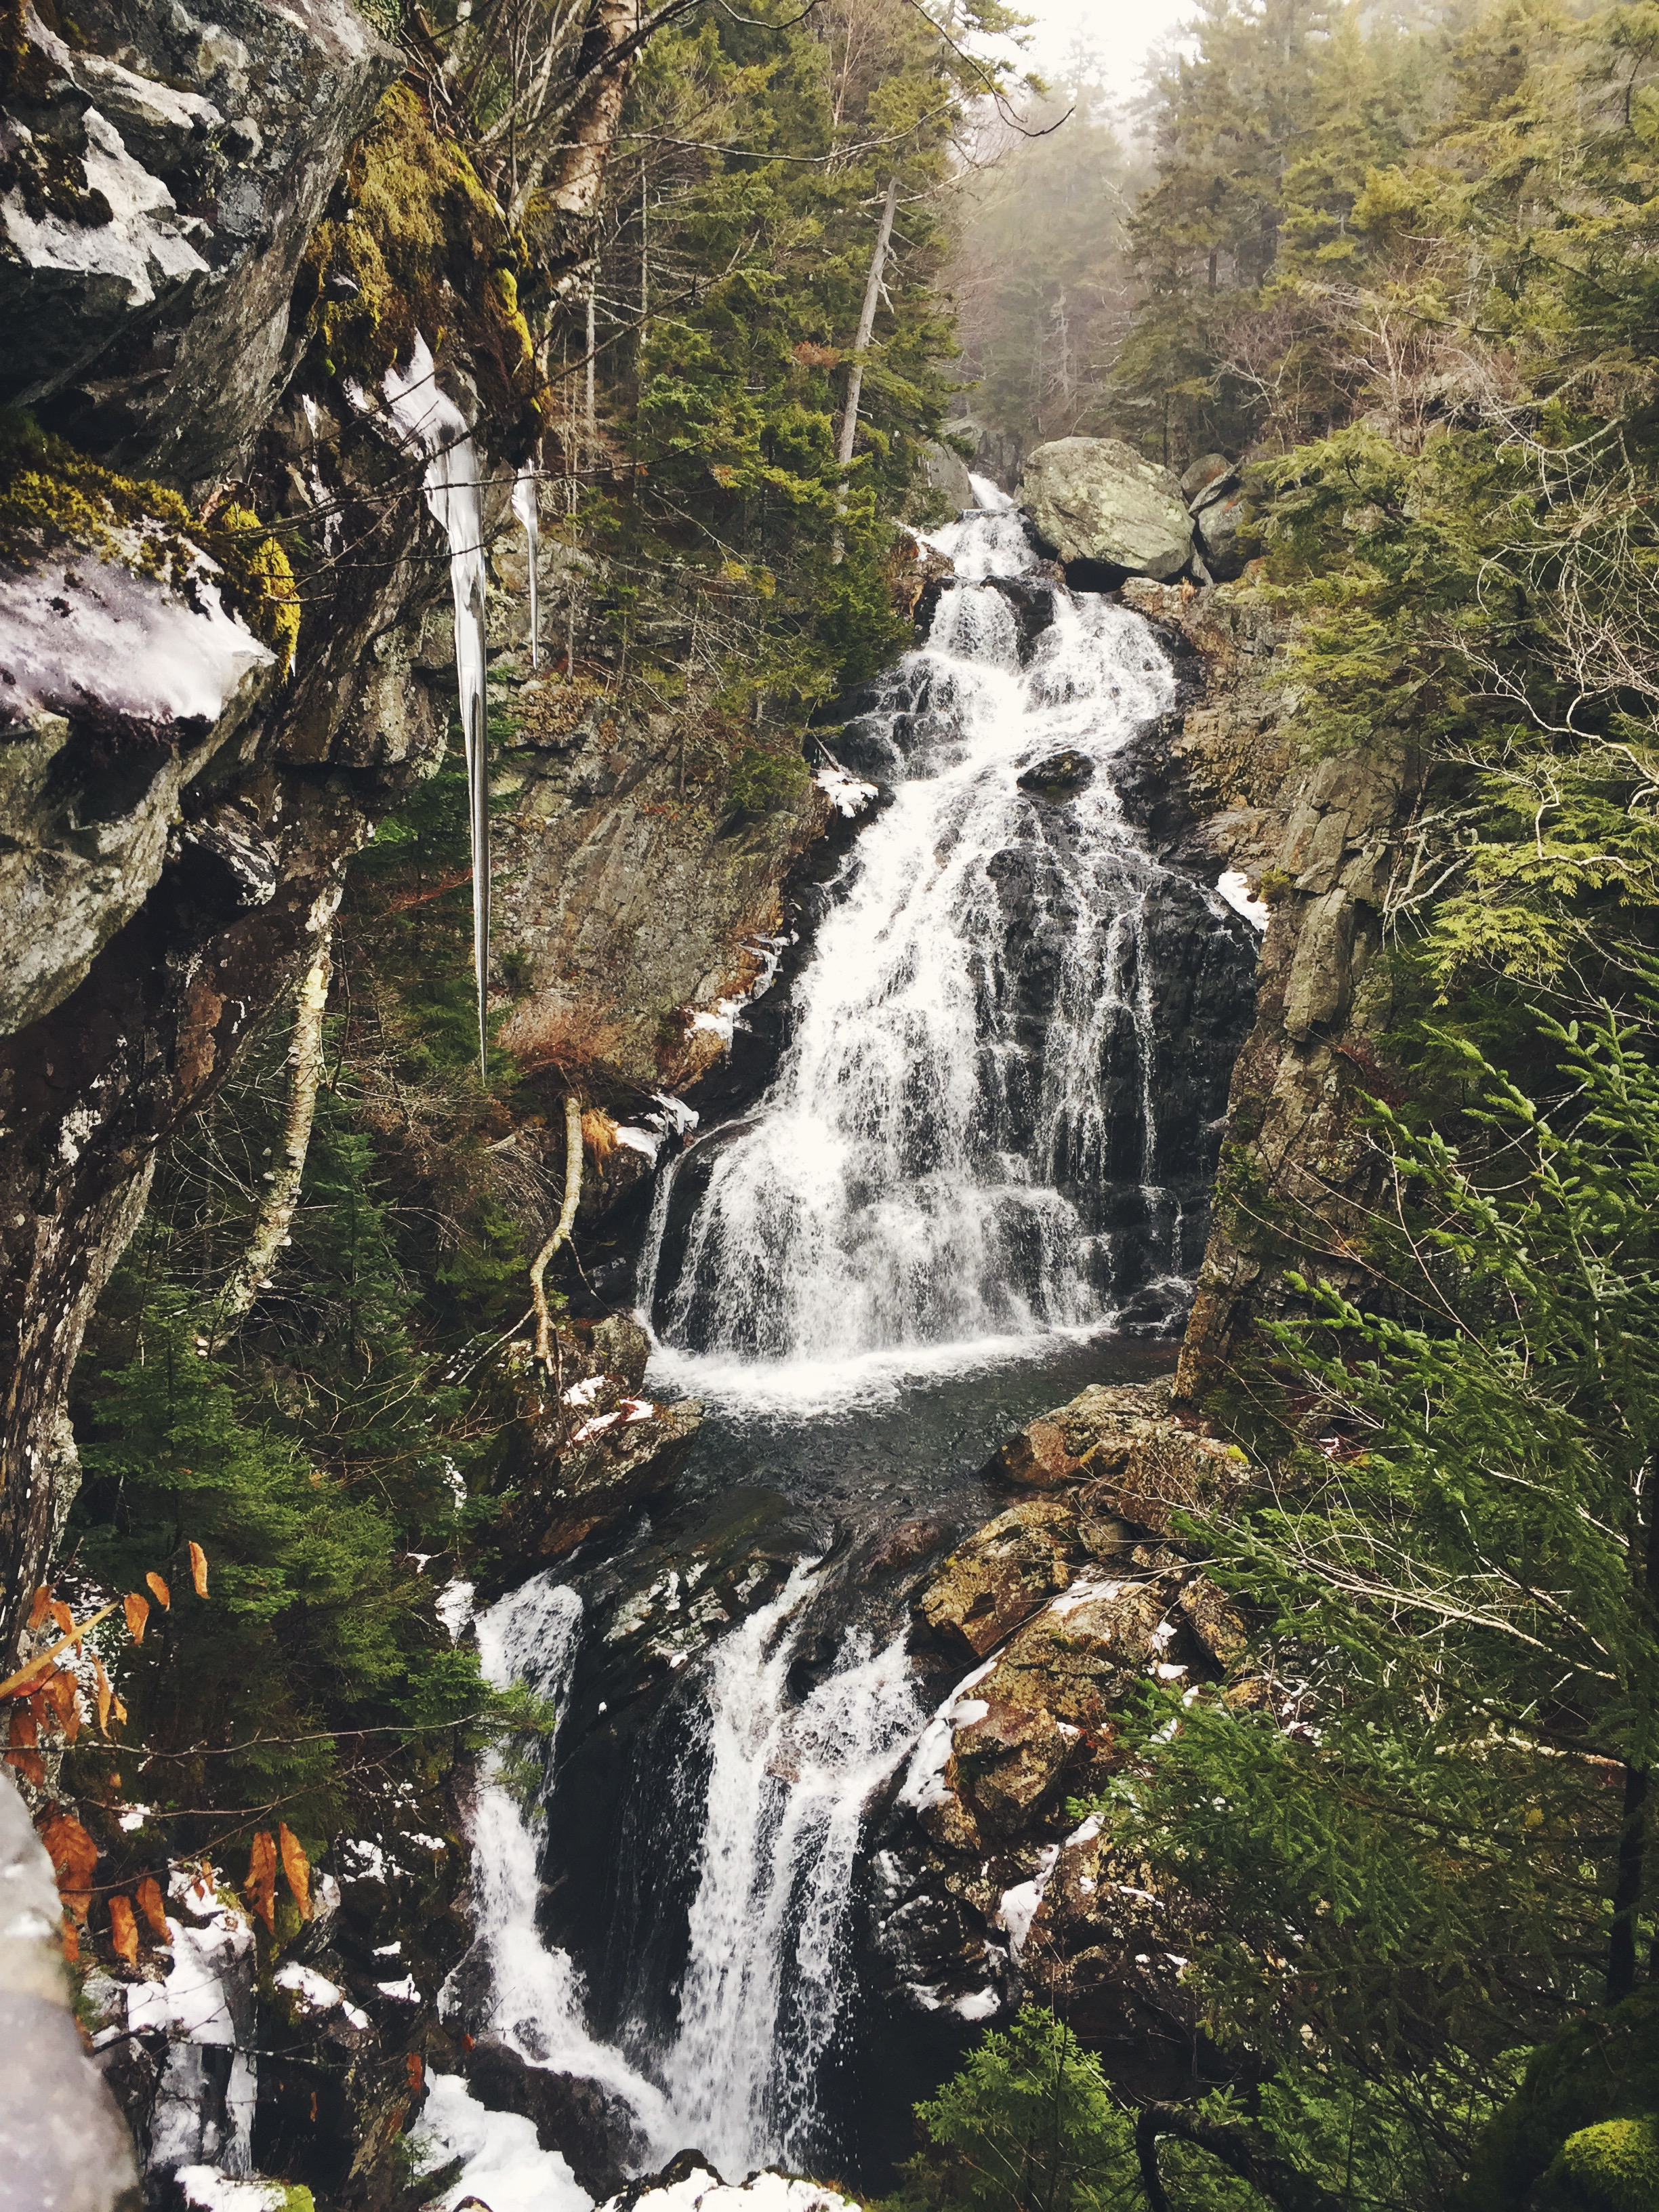 Crystal Cascade, as viewed later in the day, resides a mere .4 miles down the trail from Pinkham Notch.